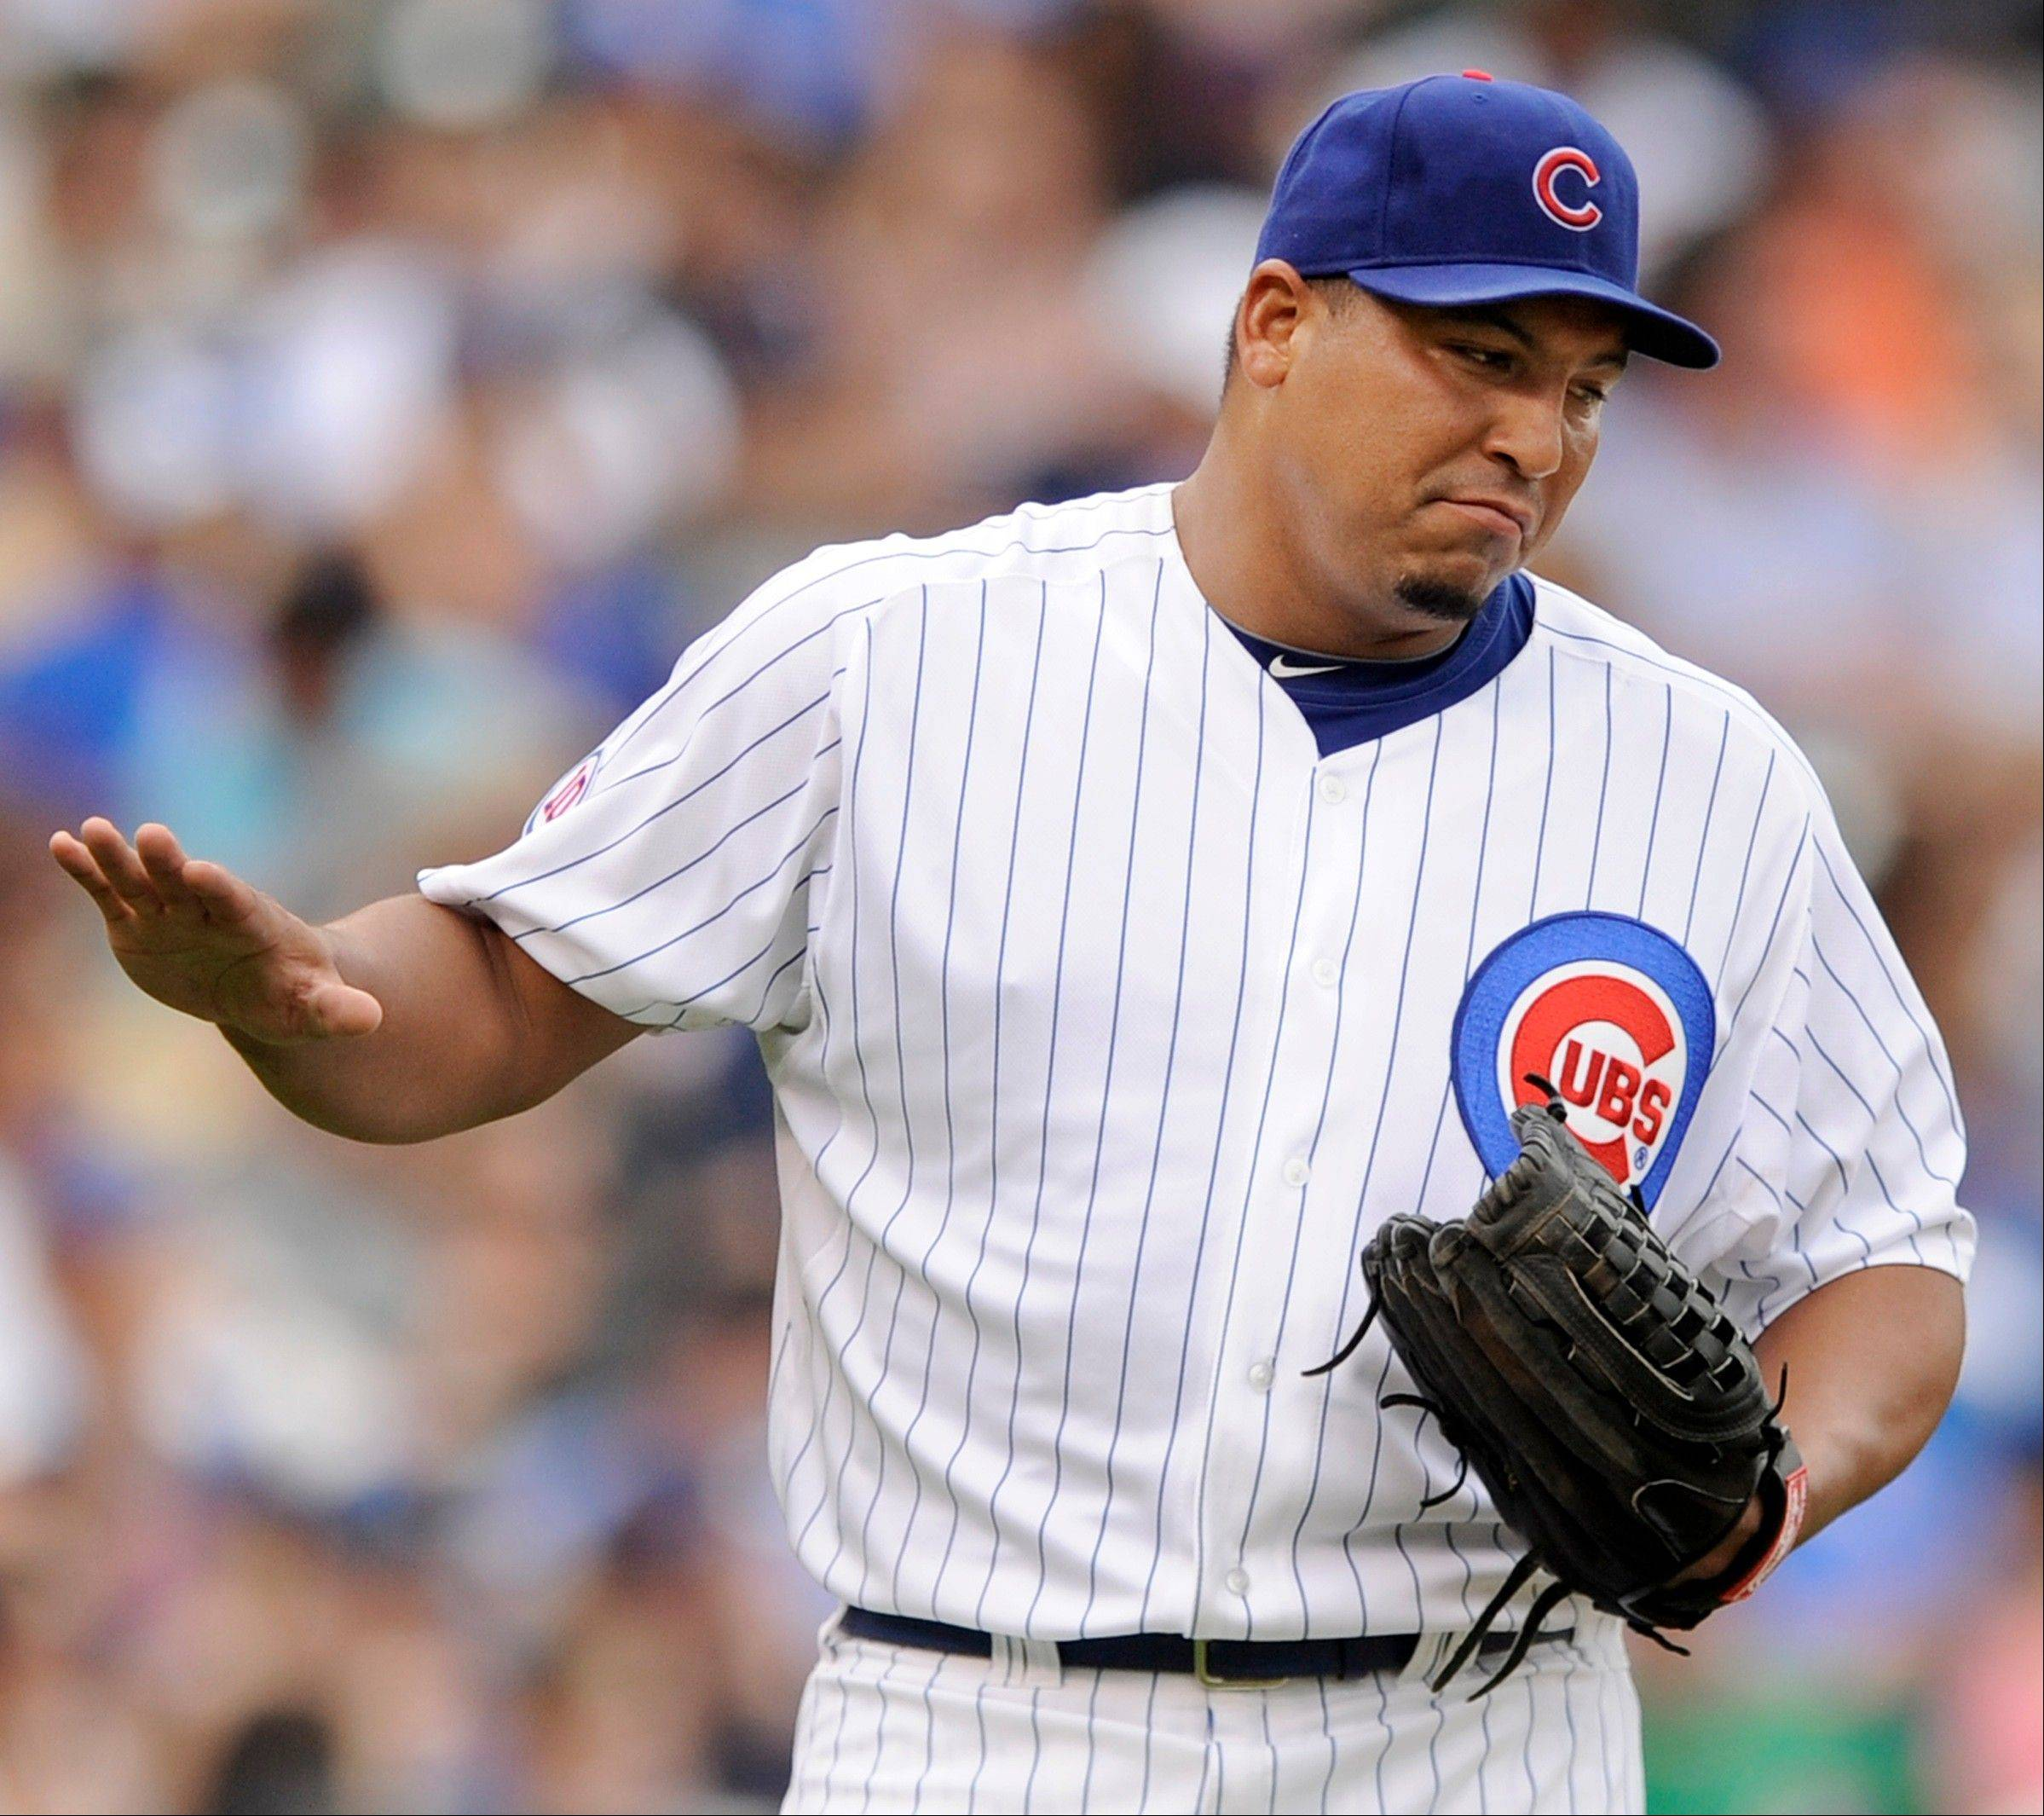 Carlos Zambrano reacts after giving up a solo home run to the Florida Marlins' Mike Stanton during the fourth inning Saturday at Wrigley Field. The Cubs lost 13-3.